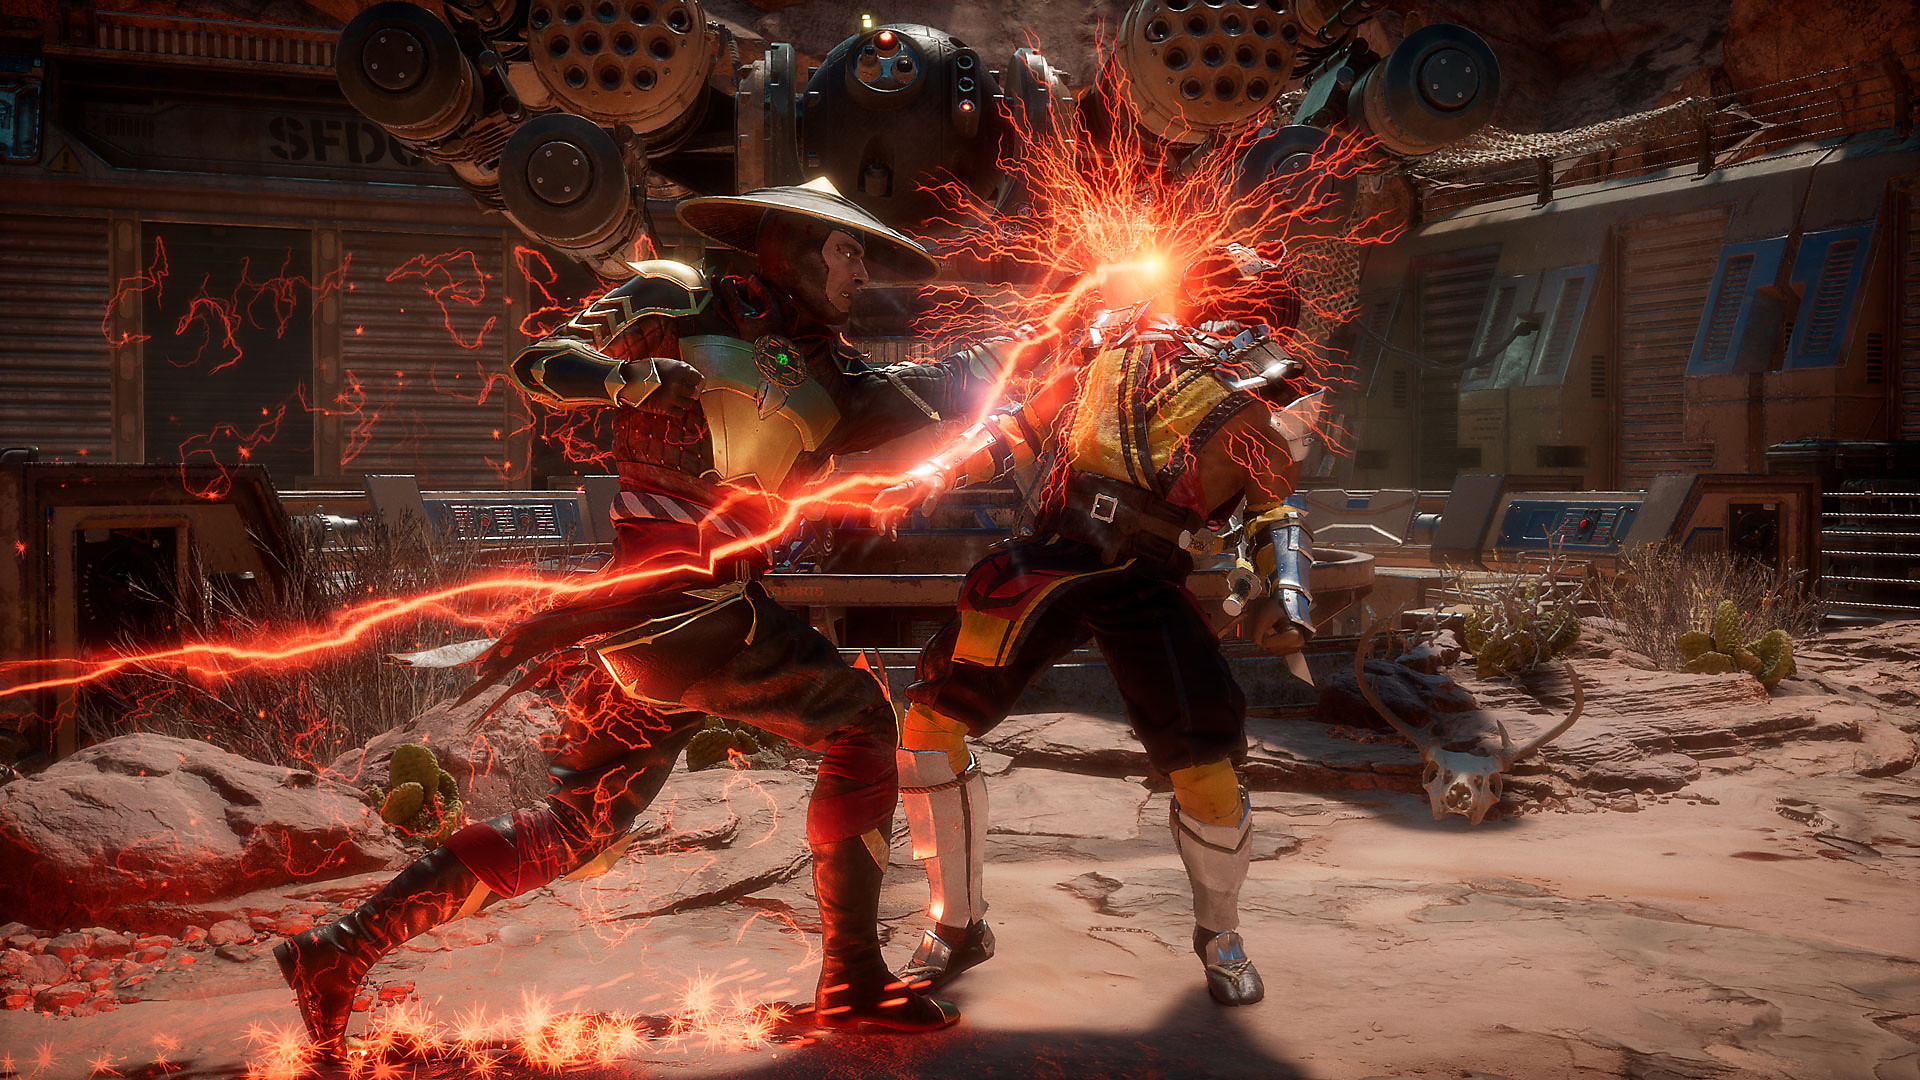 Mortal Kombat Studio, NetherRealm, Is Investigating Claims of Toxic Work Conditions - PlayStation LifeStyle